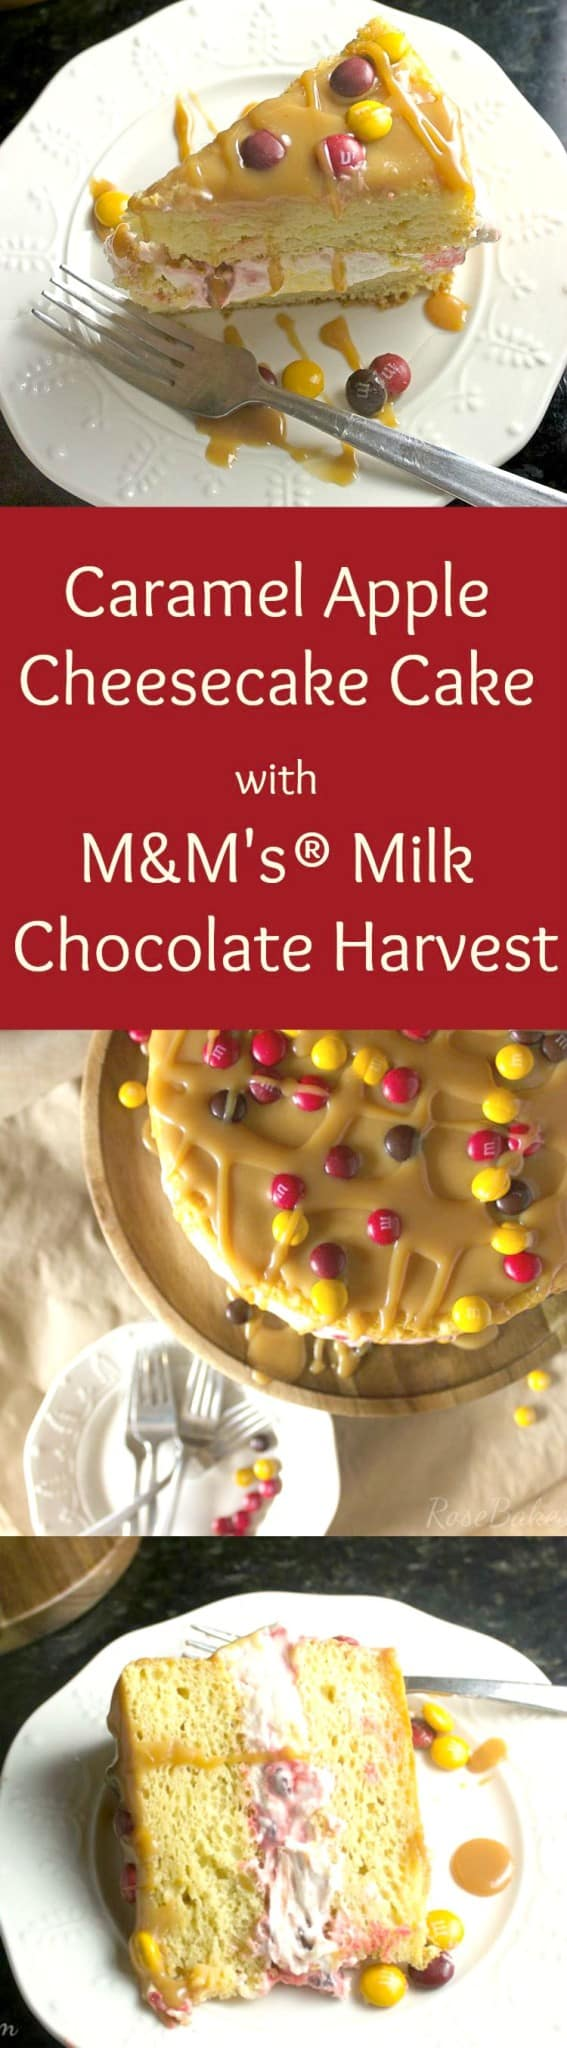 Caramel Apple Cheesecake Cake with M&M's Milk Chocolate Harvest - A Perfect Fall Recipe!